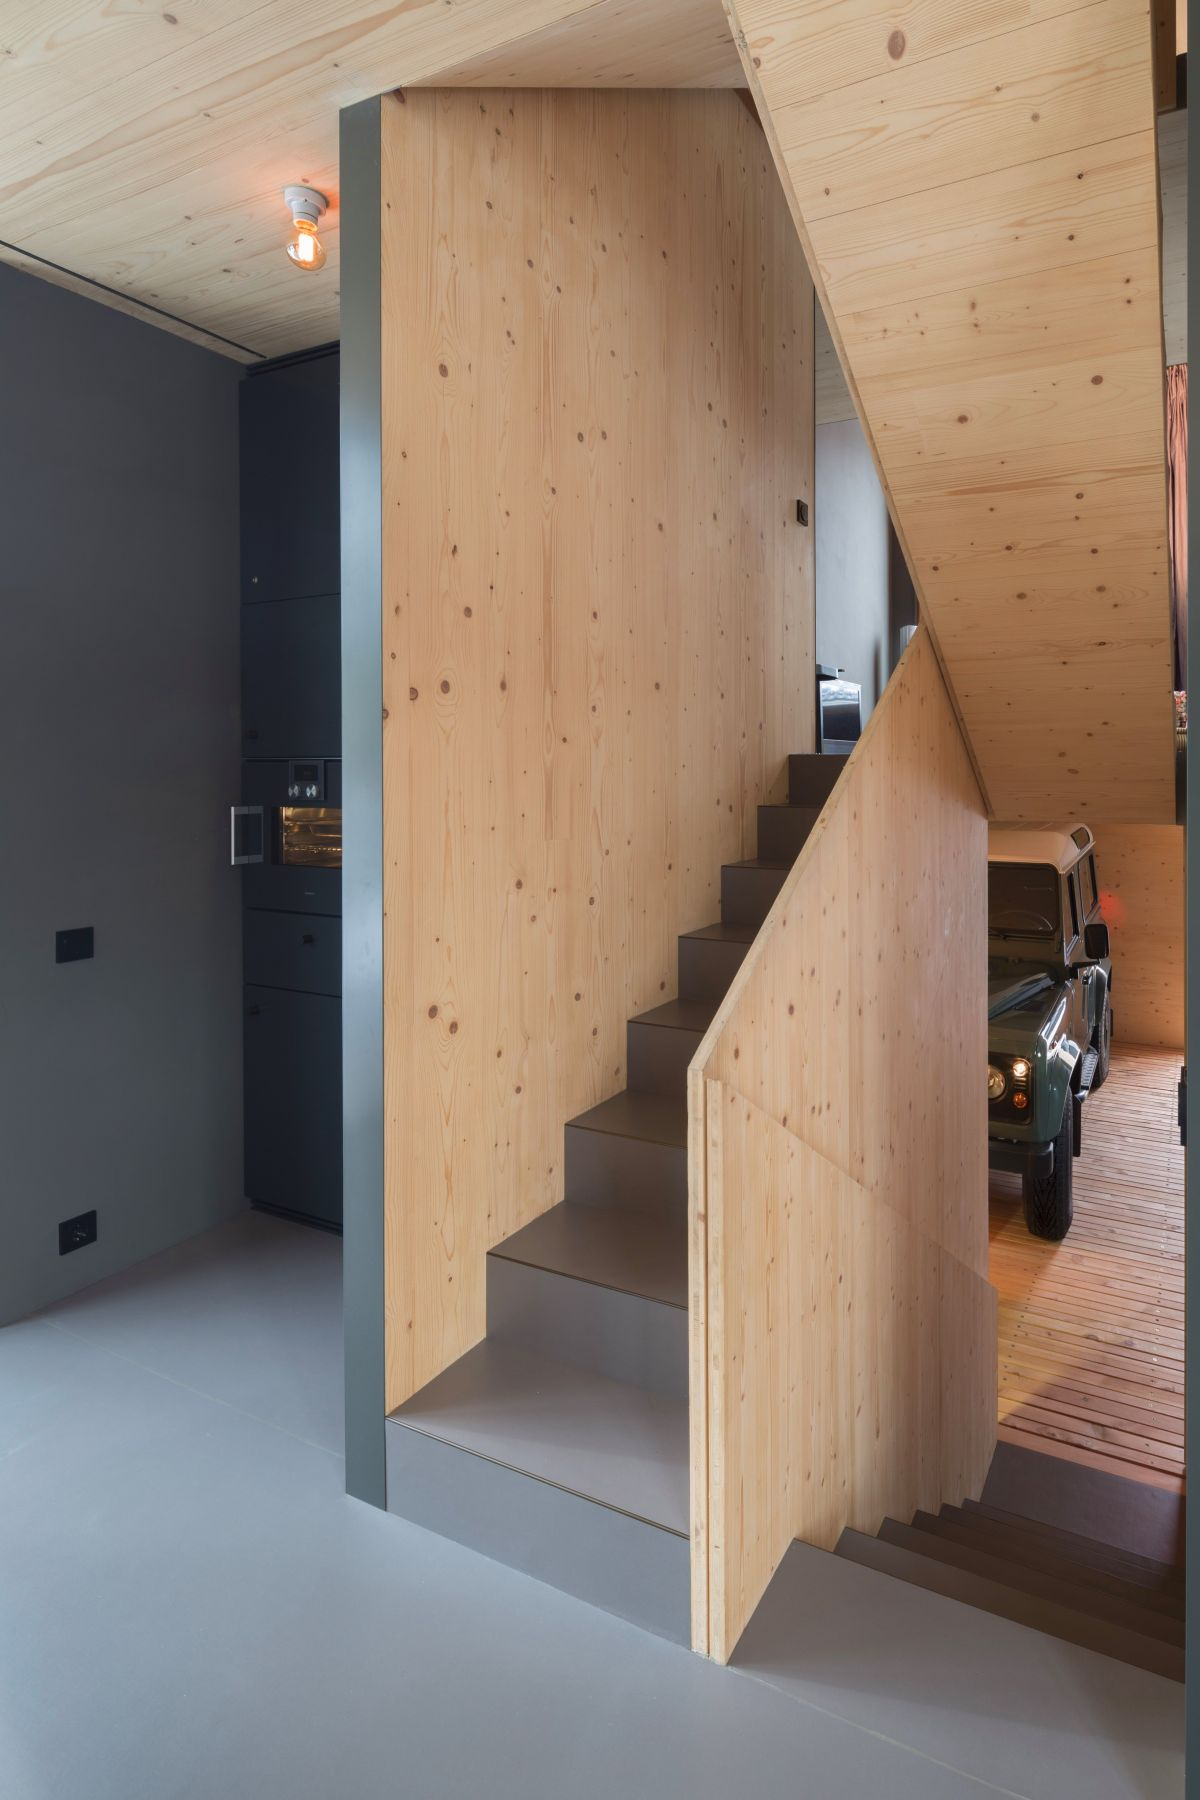 The staircase which connects the floors is very simple and framed by wood panels on either side